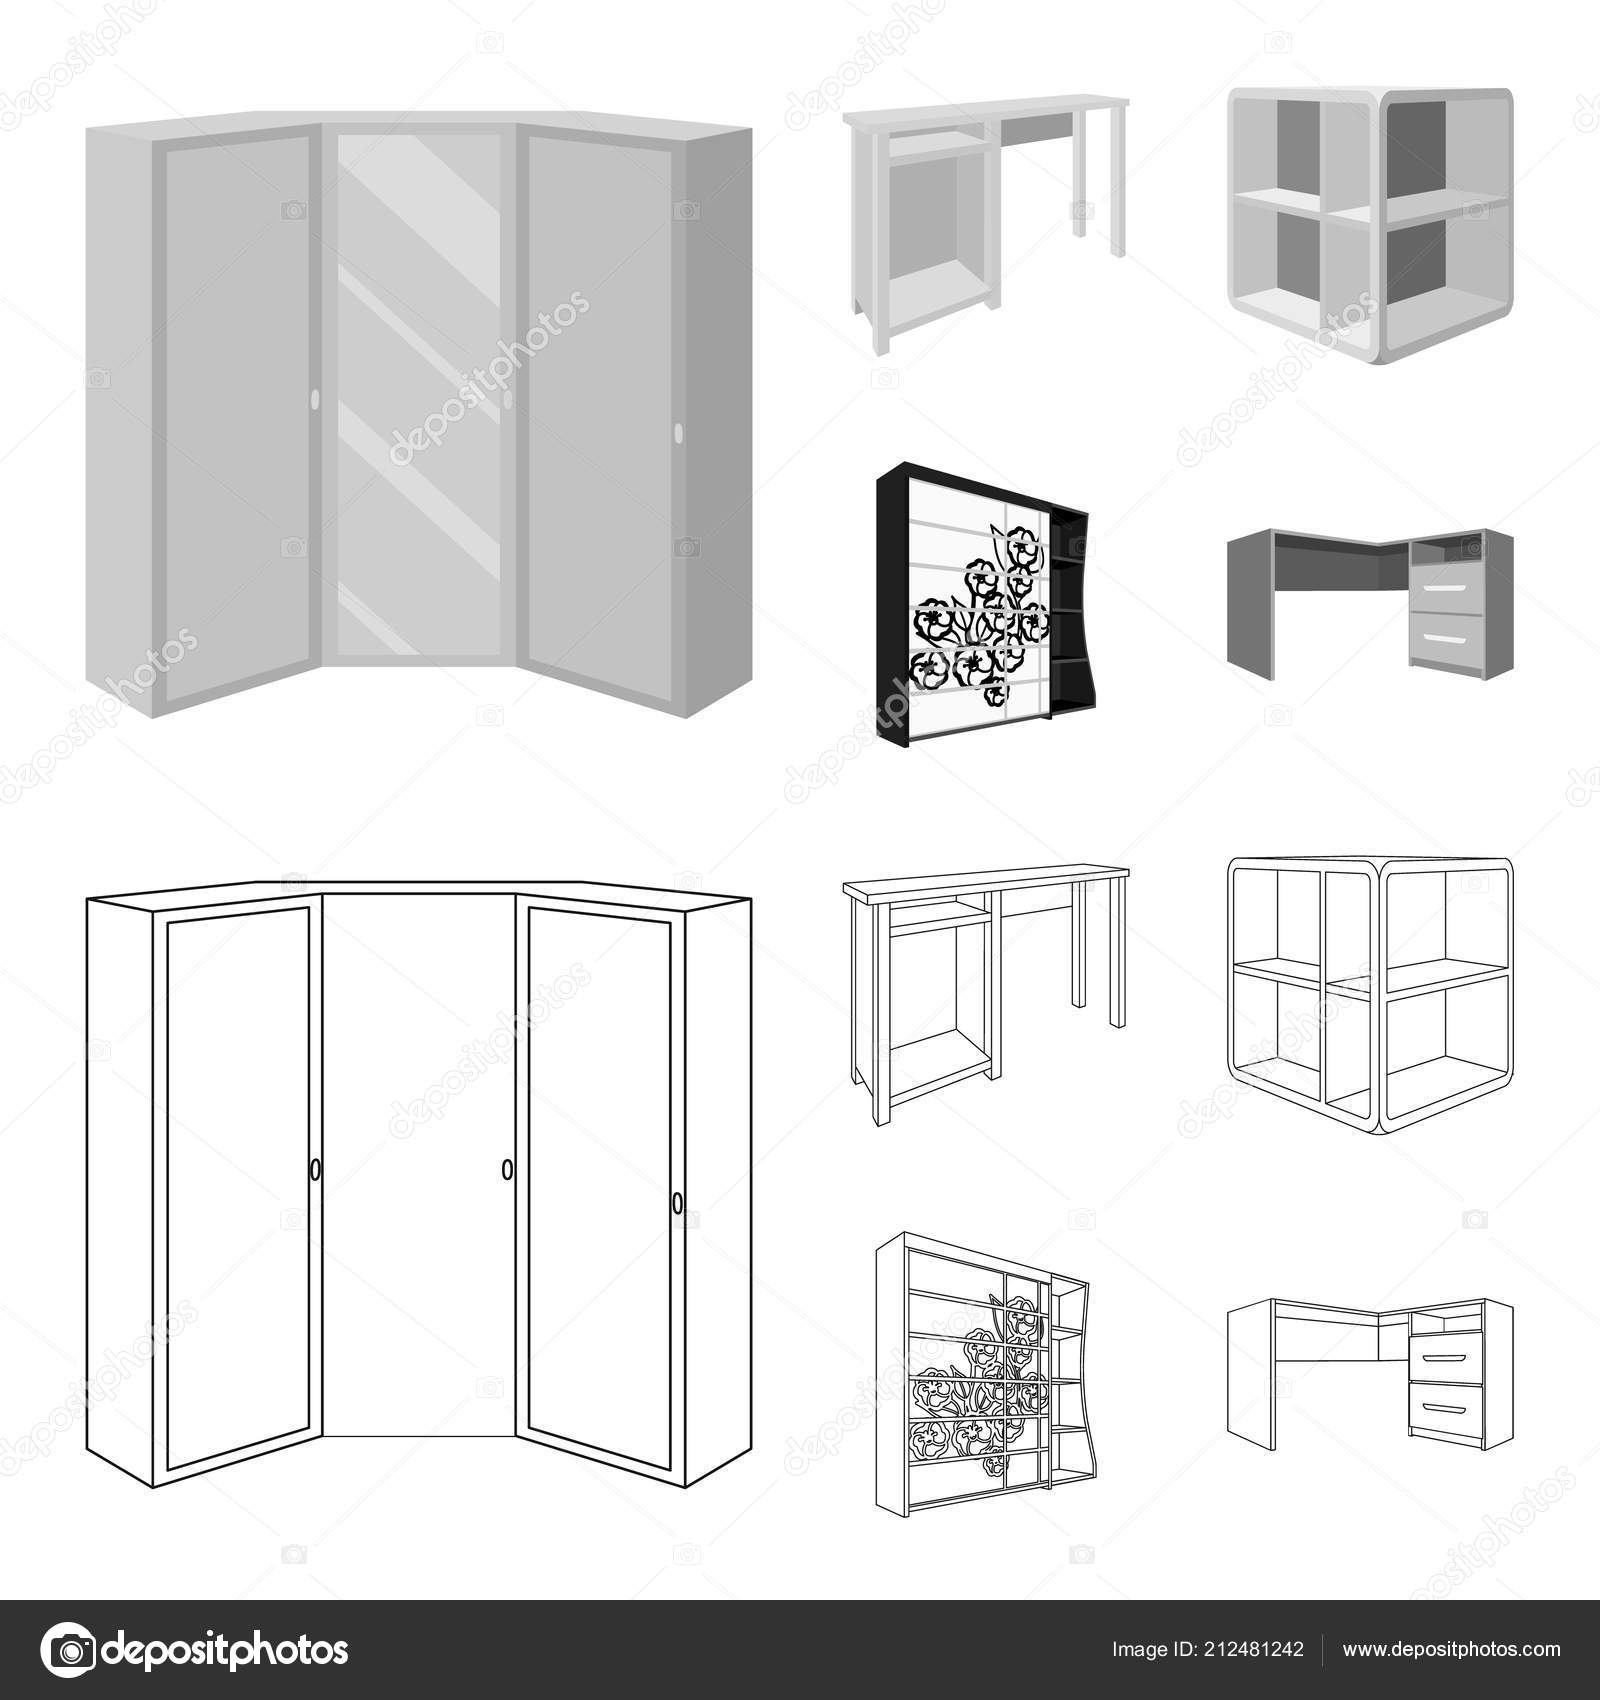 Dressing Table Corner Shelves Computer Desk Wardrobe With Glass Bedroom Furniture Set Collection Icons In Outline Monochrome Style Vector Symbol Stock Illustration Web Vector Image By Pandavector Vector Stock 212481242